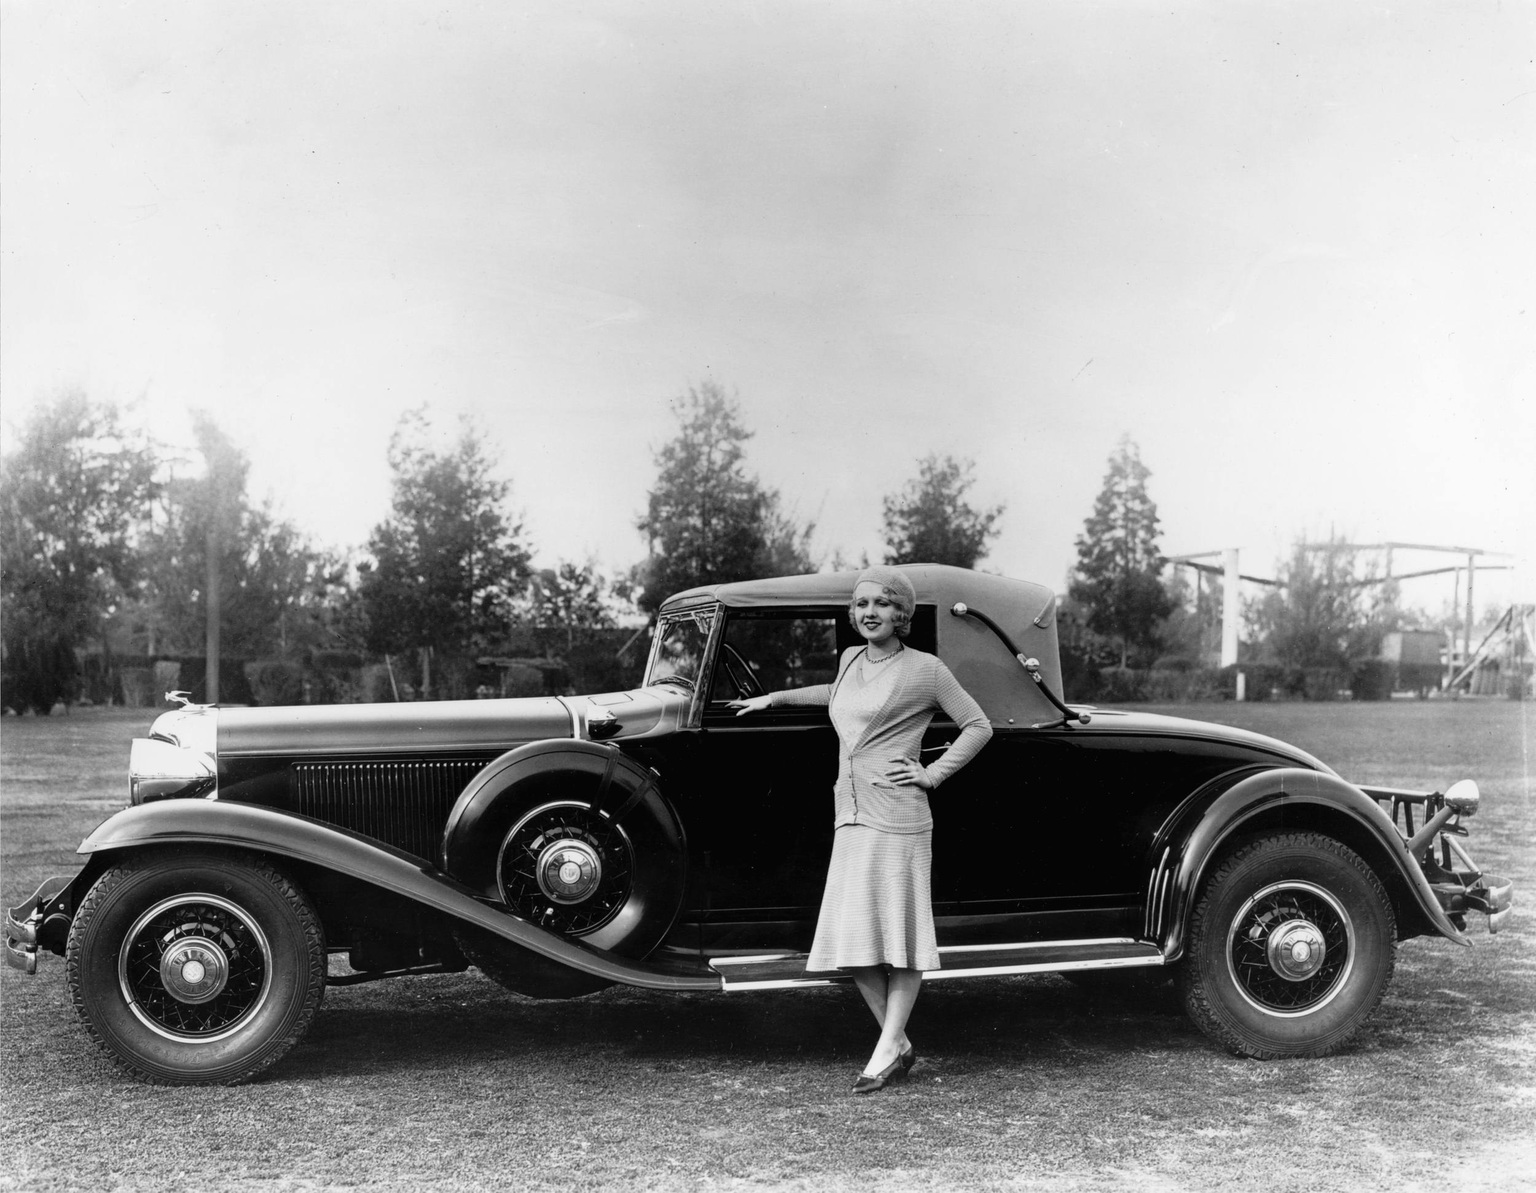 1931 CG Imperial Roadster. Chrysler brand 75th Anniversary press kit photo. March, 1999.